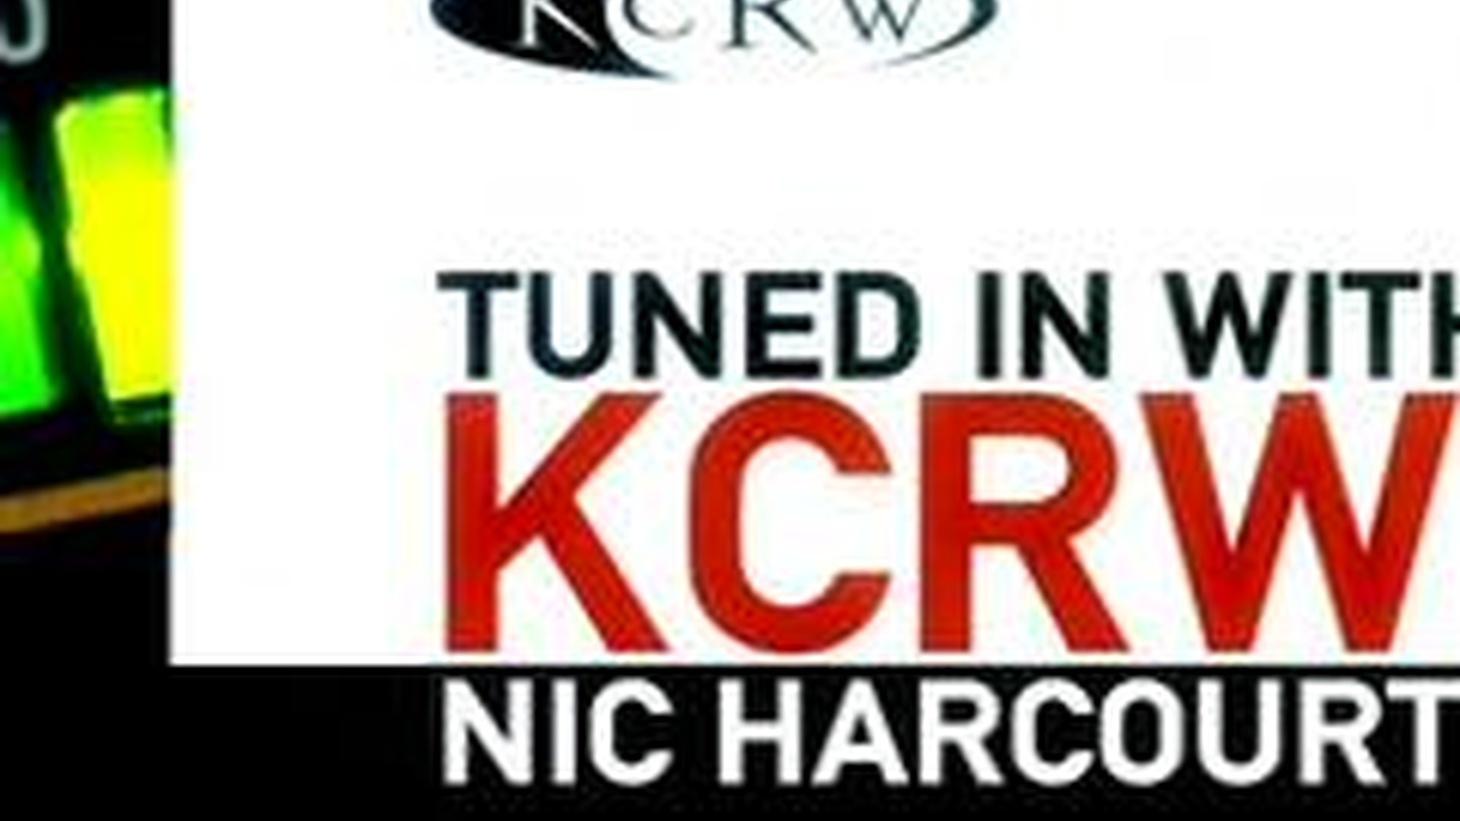 """In this episode of  Tuned in with Nic Harcourt, Nic features some hot new tunes including Bloc Party's new single """"Mercury,"""" and new albums from..."""